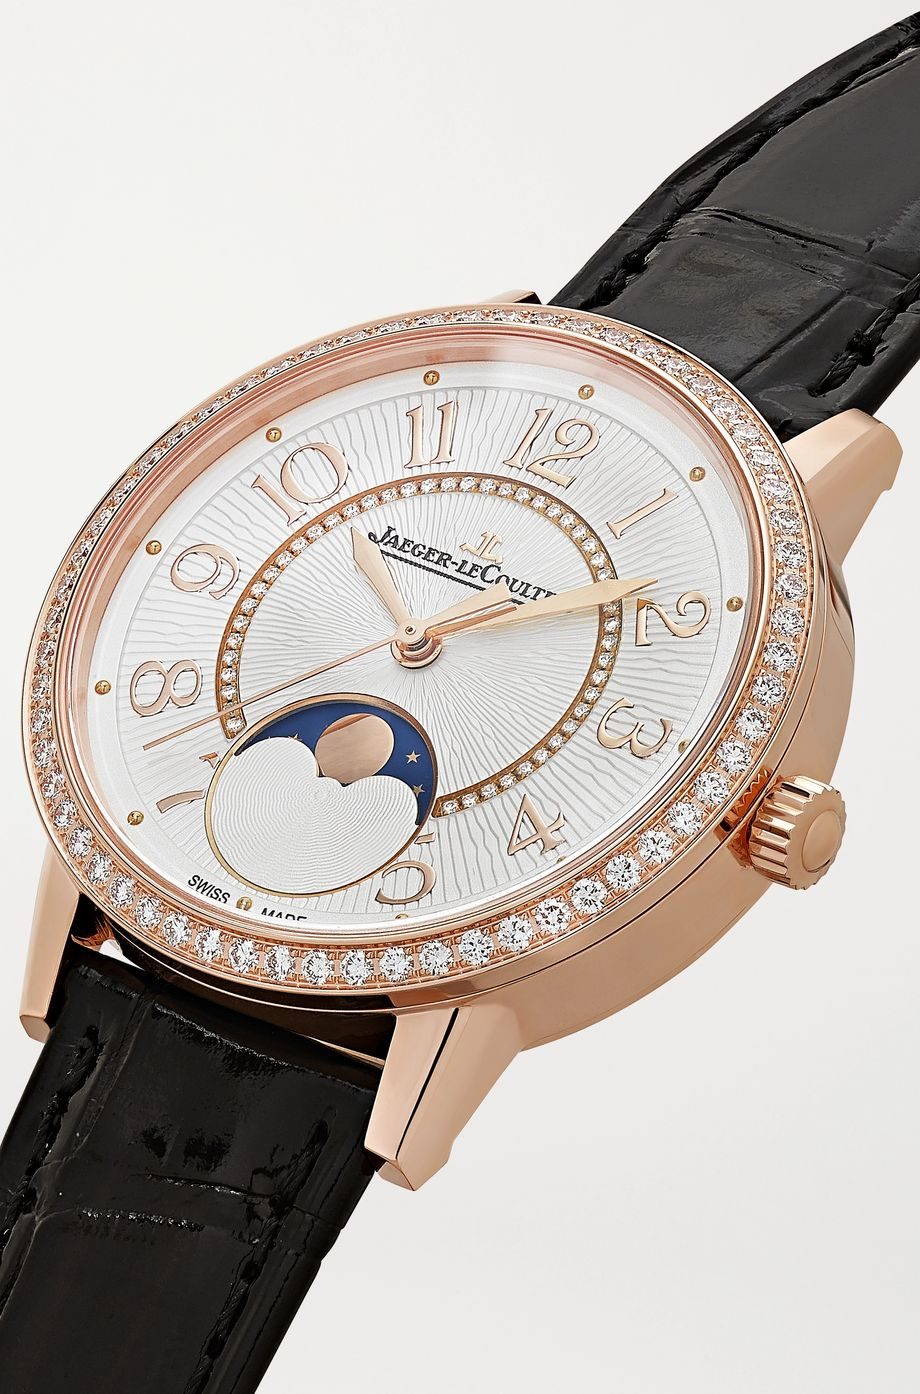 Jaeger-LeCoultre Rendez-Vous Moon Automatic Medium 34 mm Uhr aus Roségold mit Diamanten und Alligatorlederarmband